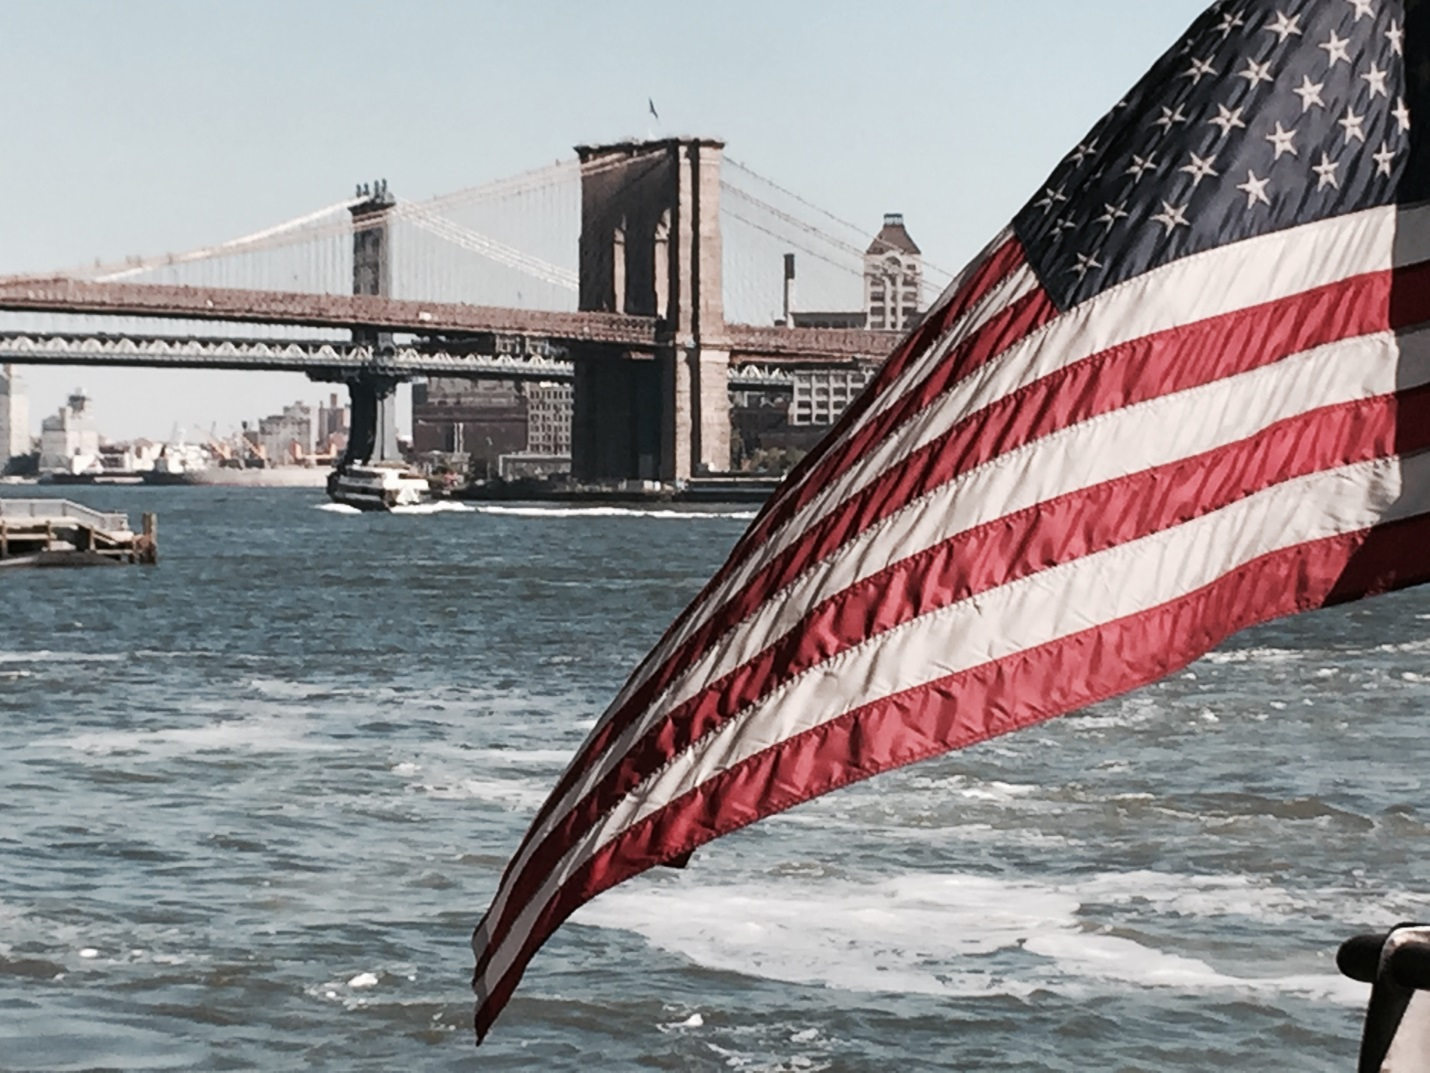 Water Taxi View of the Brooklyn Bridge